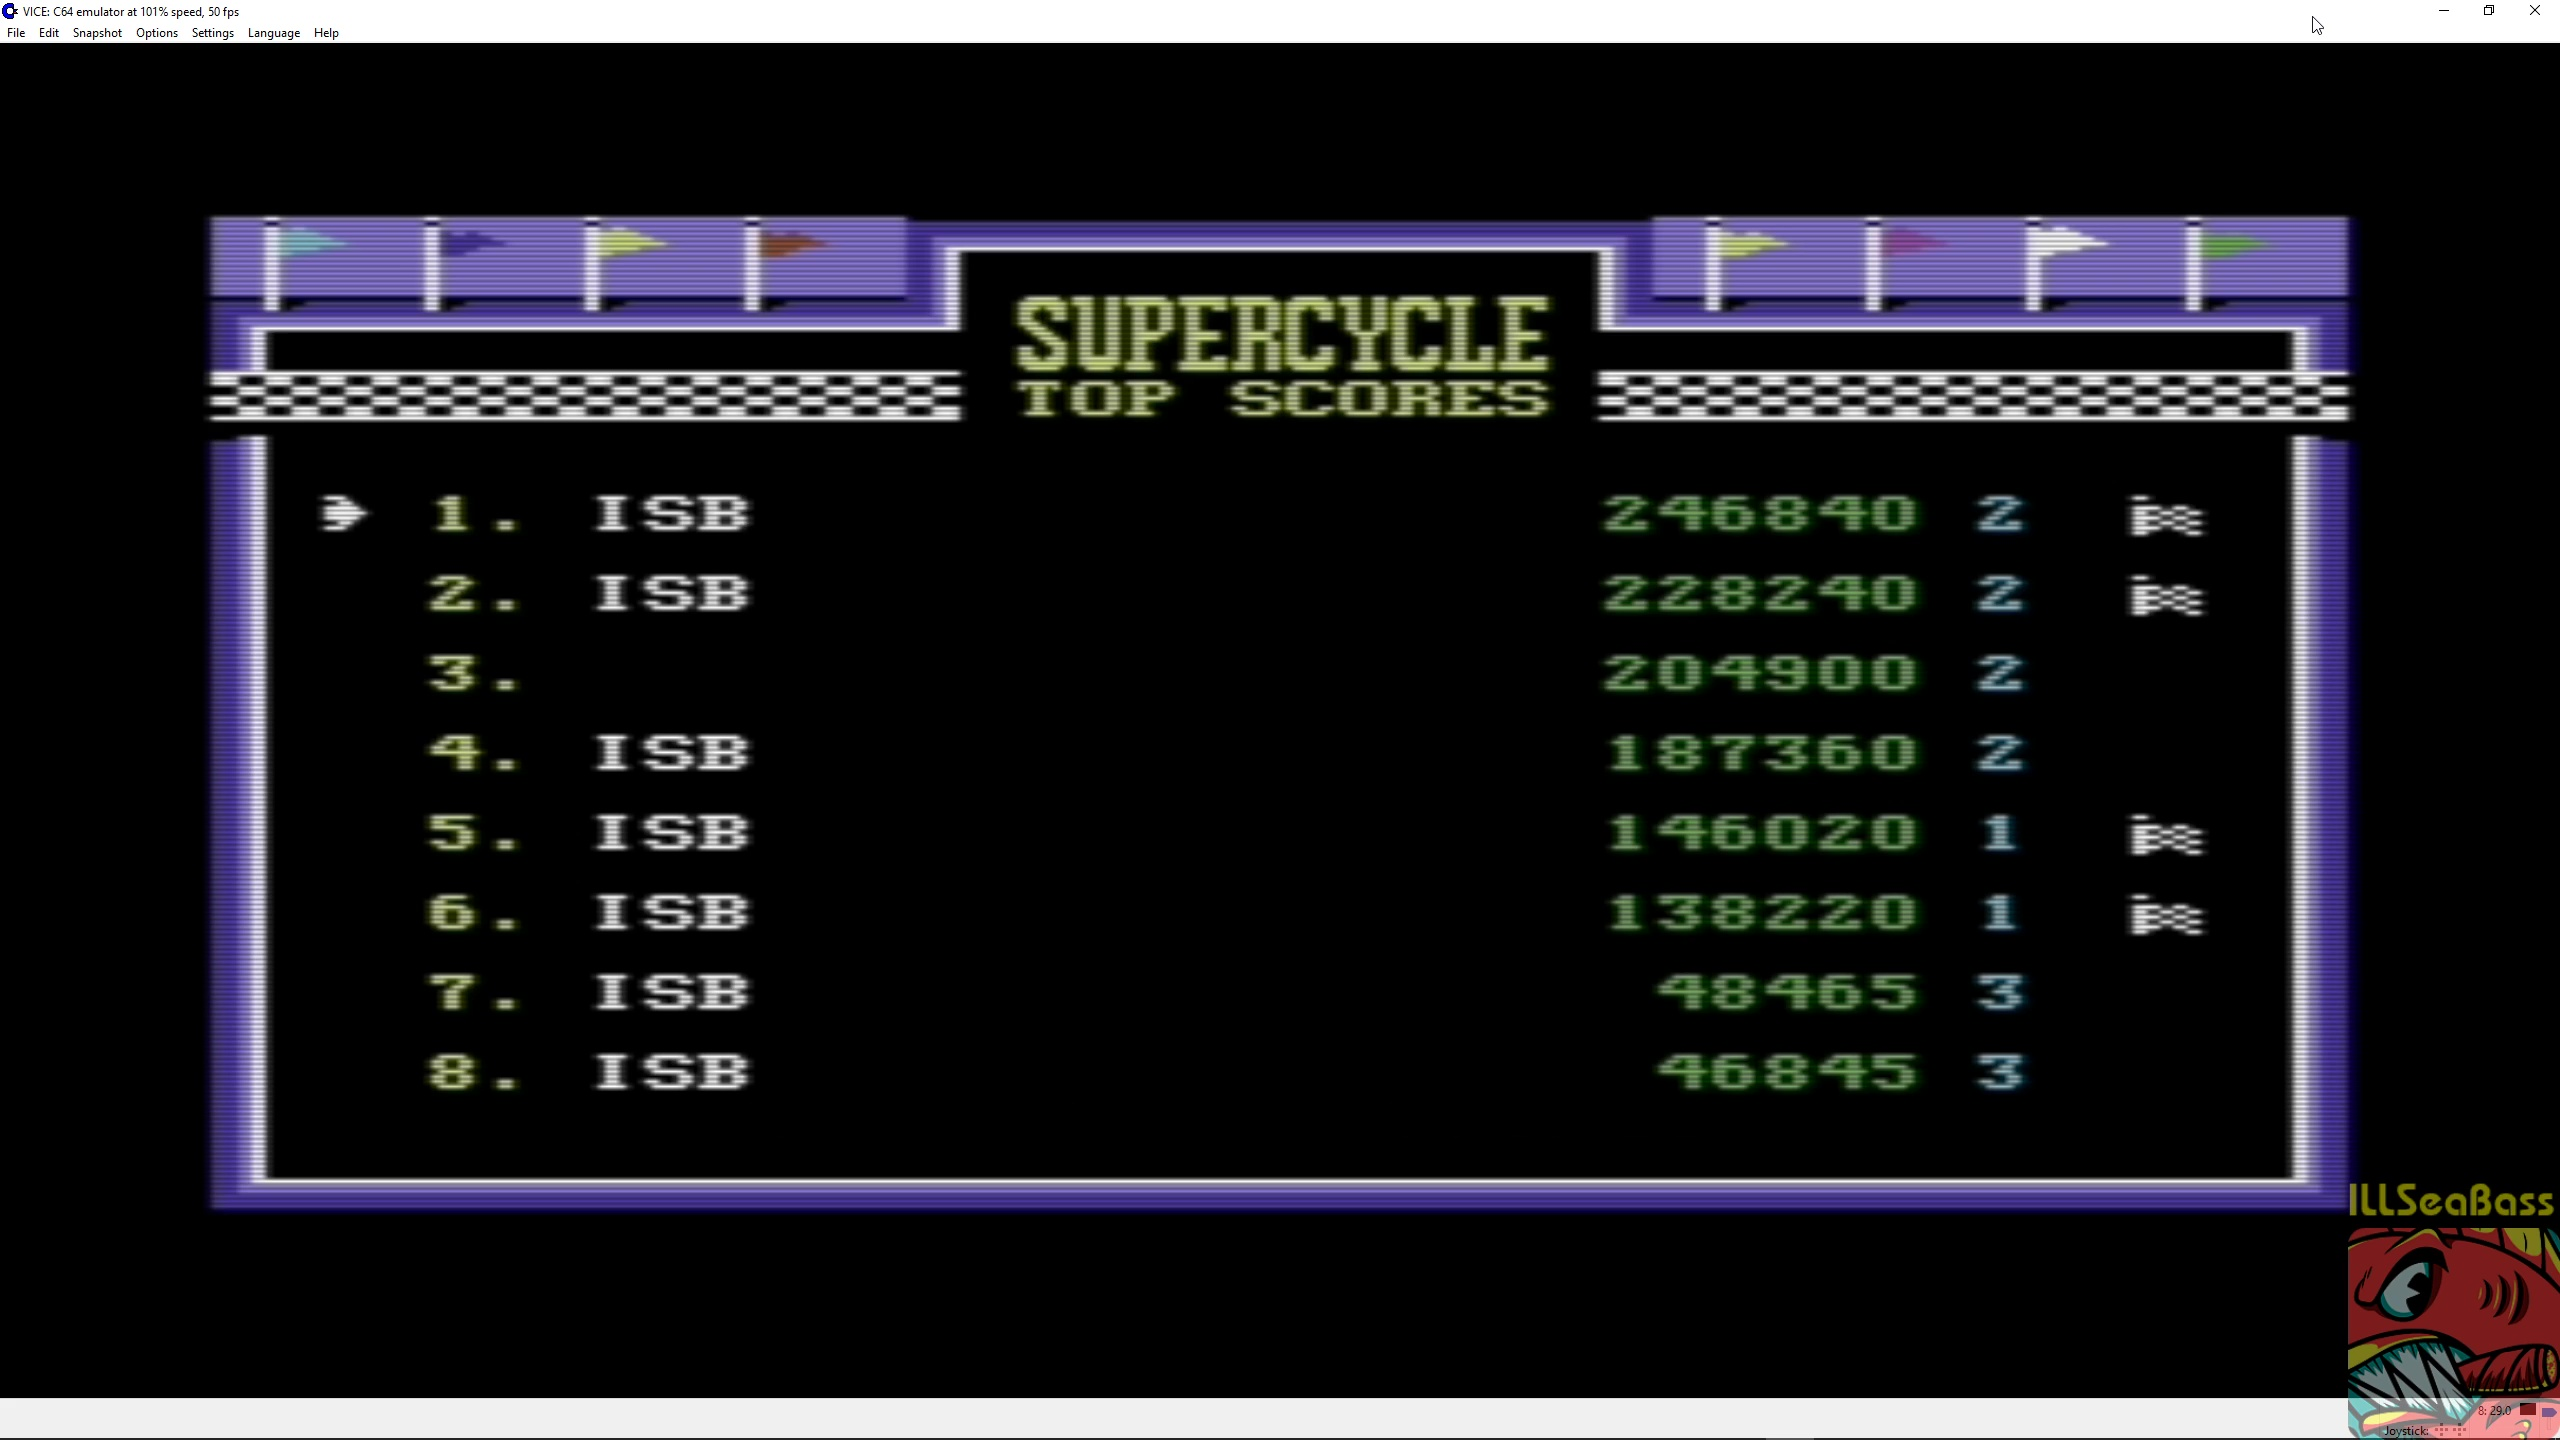 ILLSeaBass: Super Cycle [Level 2 Start] (Commodore 64 Emulated) 246,840 points on 2018-04-02 15:48:34